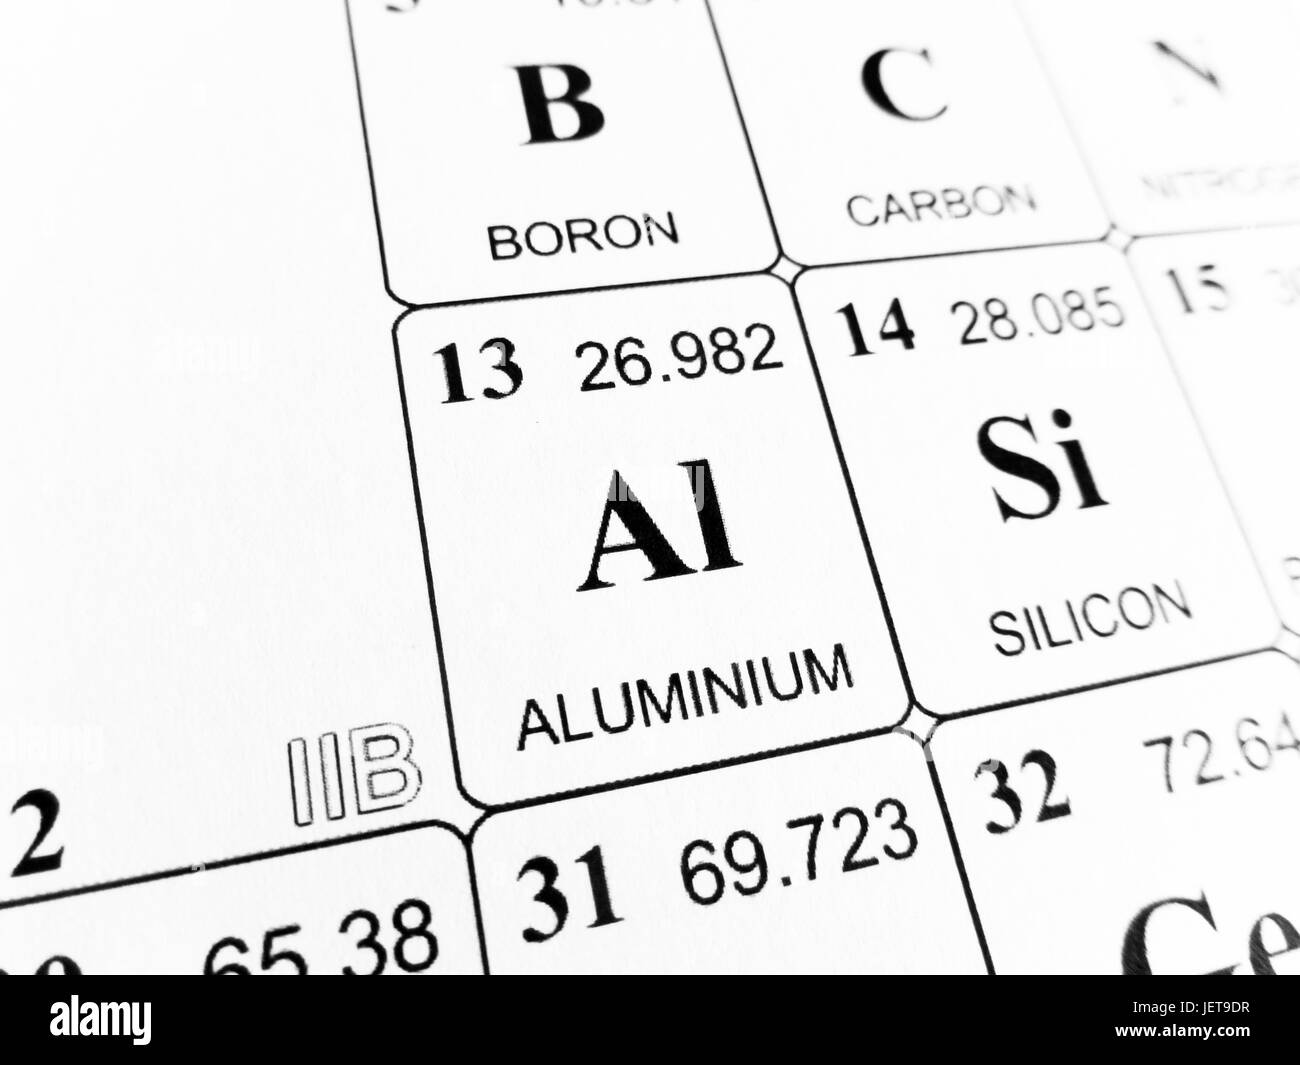 Aluminium on the periodic table of the elements stock photo aluminium on the periodic table of the elements gamestrikefo Choice Image